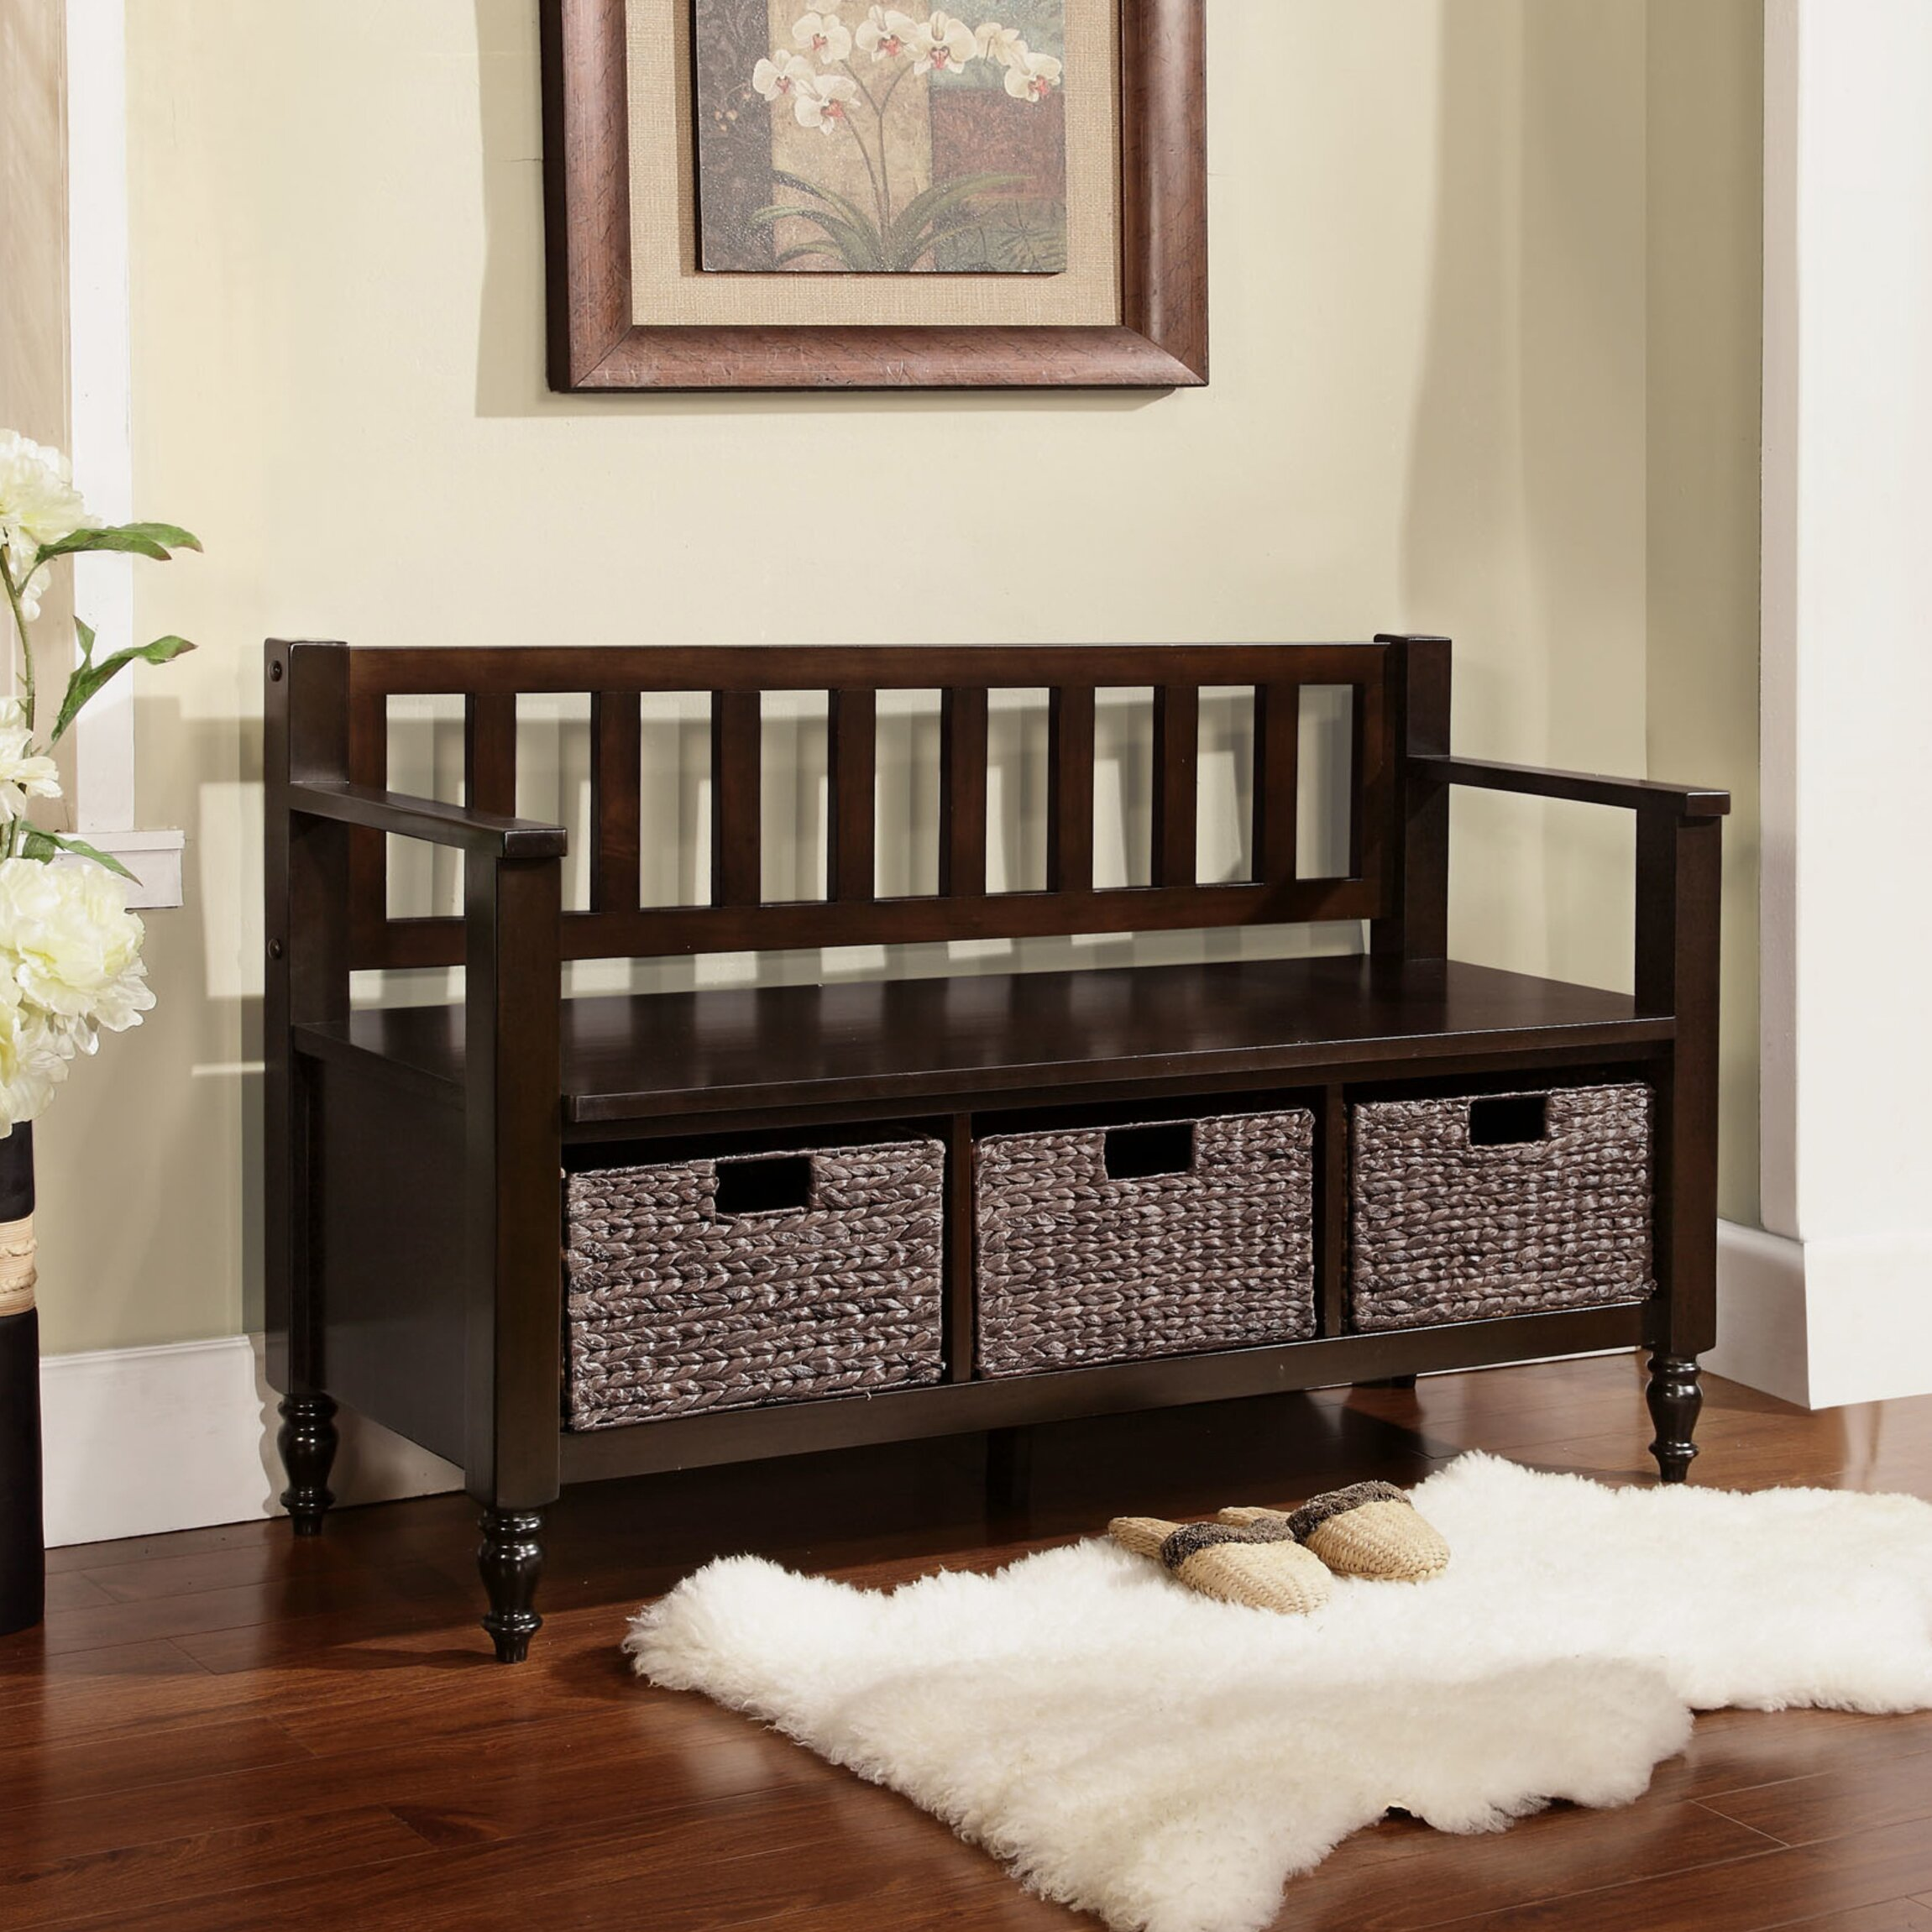 Foyer Seating Qatar : Simpli home dakota entryway bench reviews wayfair